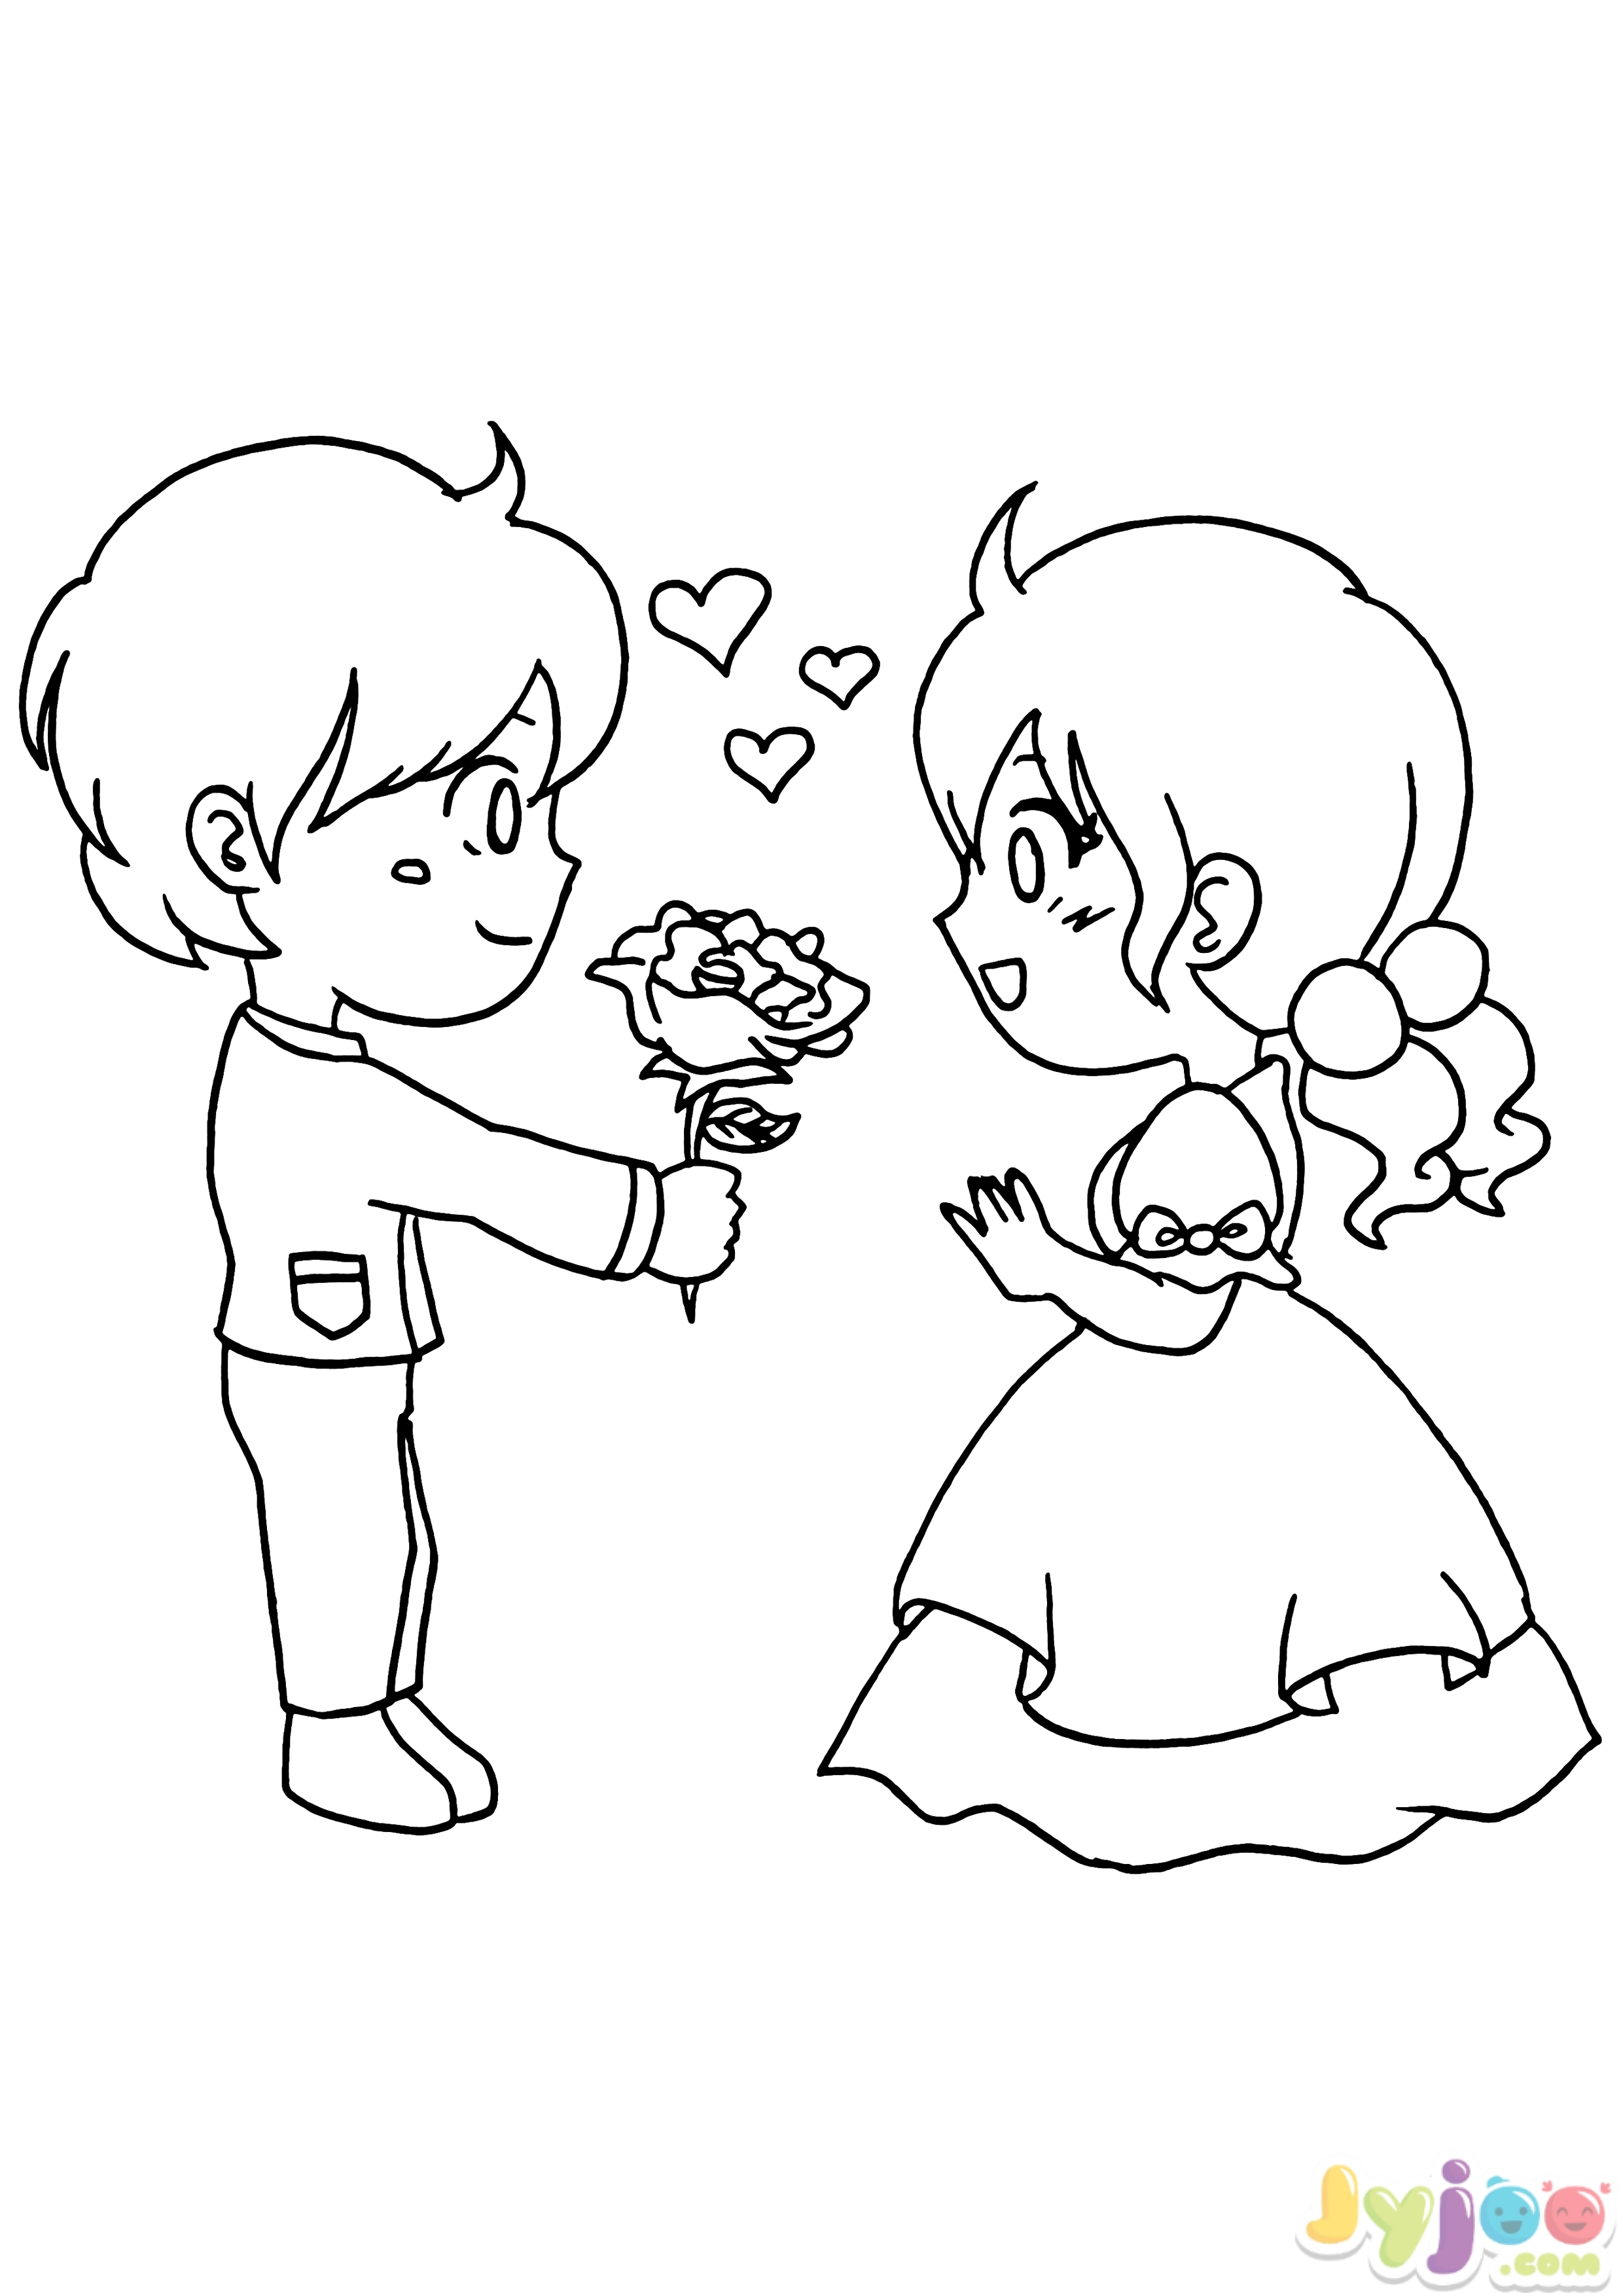 valentine coloring pages for adults - 14